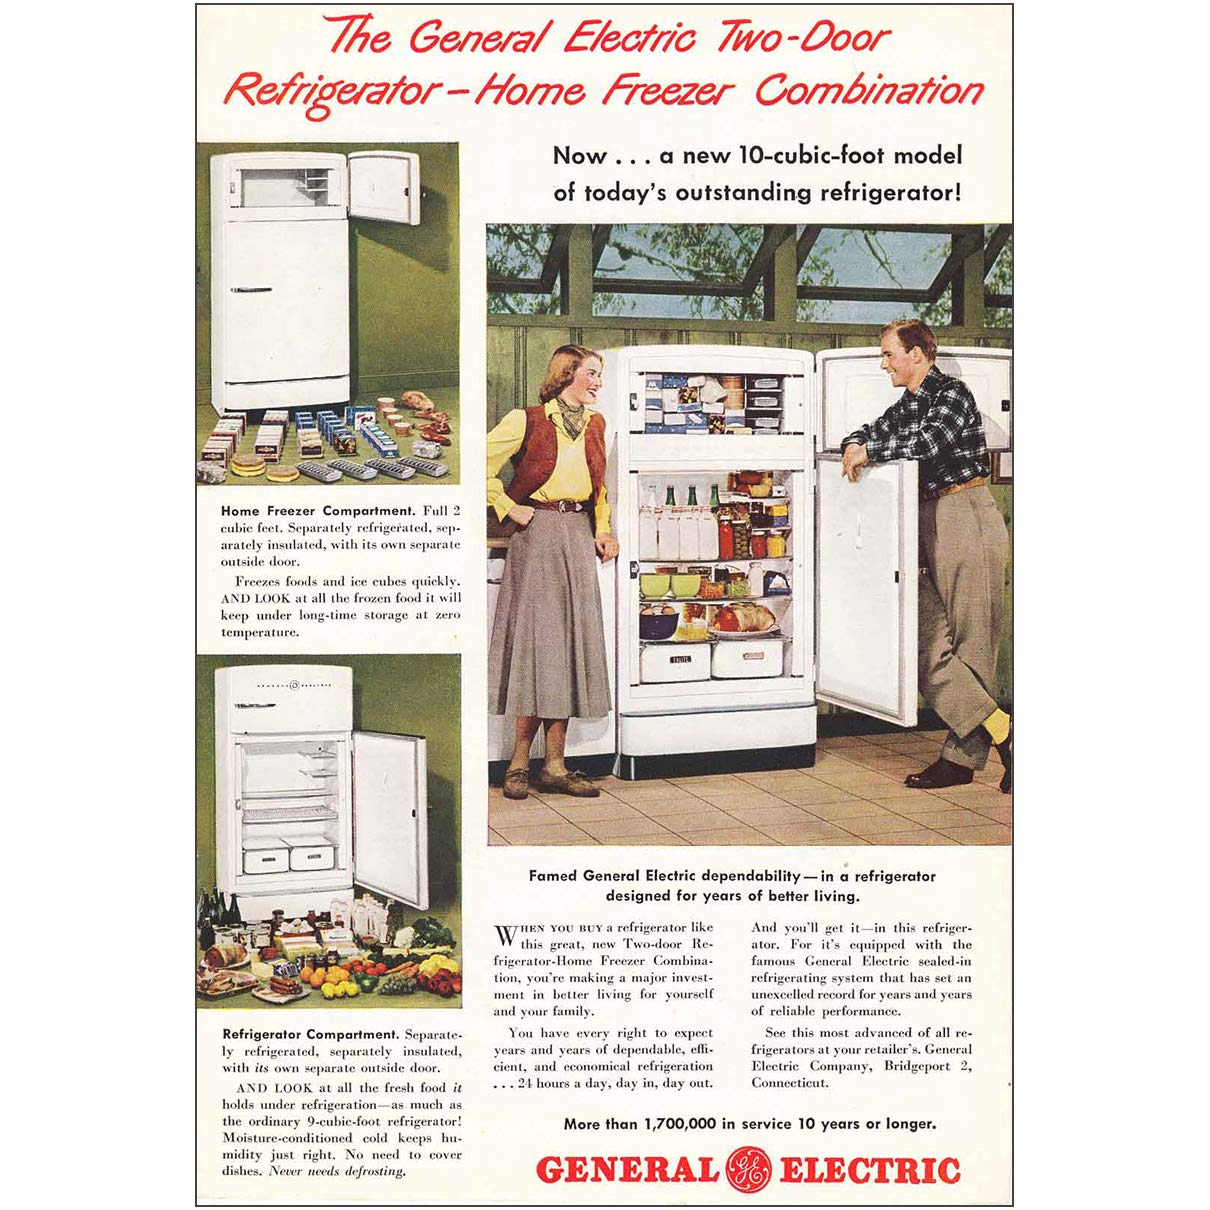 1948 General Electric Refrigerator: 10 Cubic Foot, General Electric Print Ad